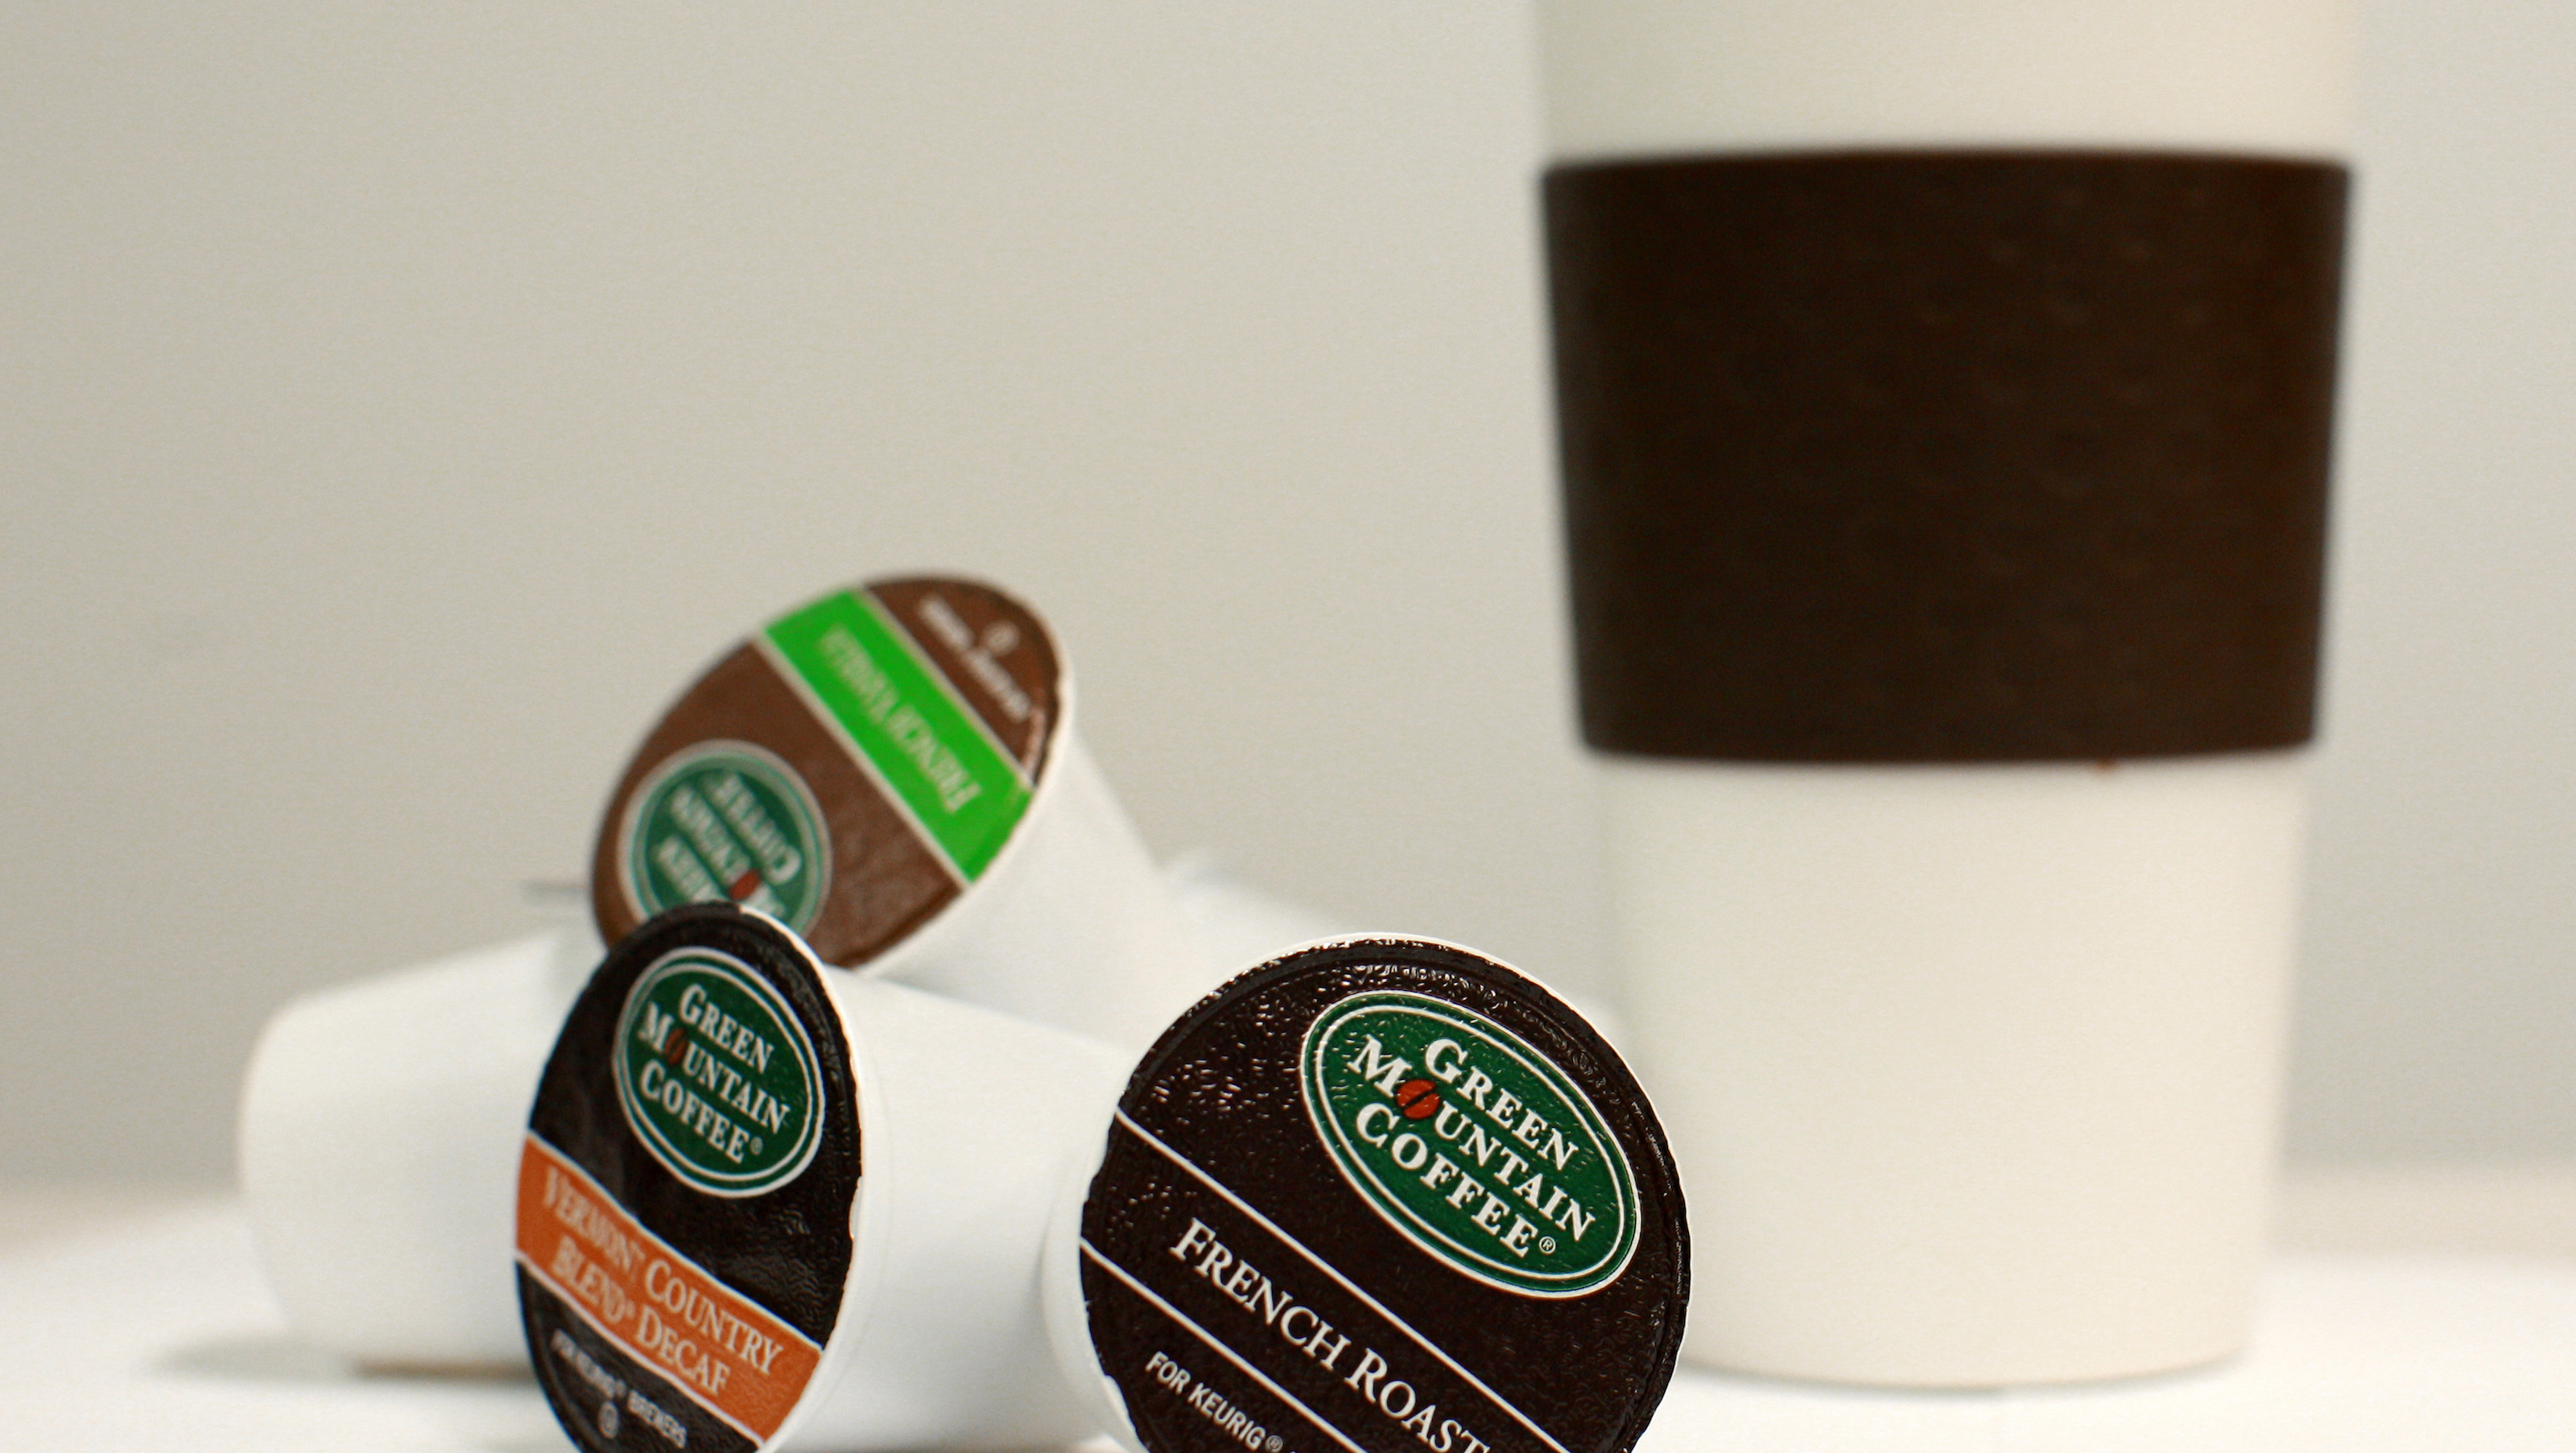 Green Mountain Coffee single-serve K-Cups are pictured with a coffee cup in New York, May 3, 2012. The company's management is quickly losing credibility with Wall Street after it badly missed sales estimates for the second time in three quarters, wiping out close to half of its market value. REUTERS/Brendan McDermid (UNITED STATES - Tags: FOOD BUSINESS) - RTR31KKD